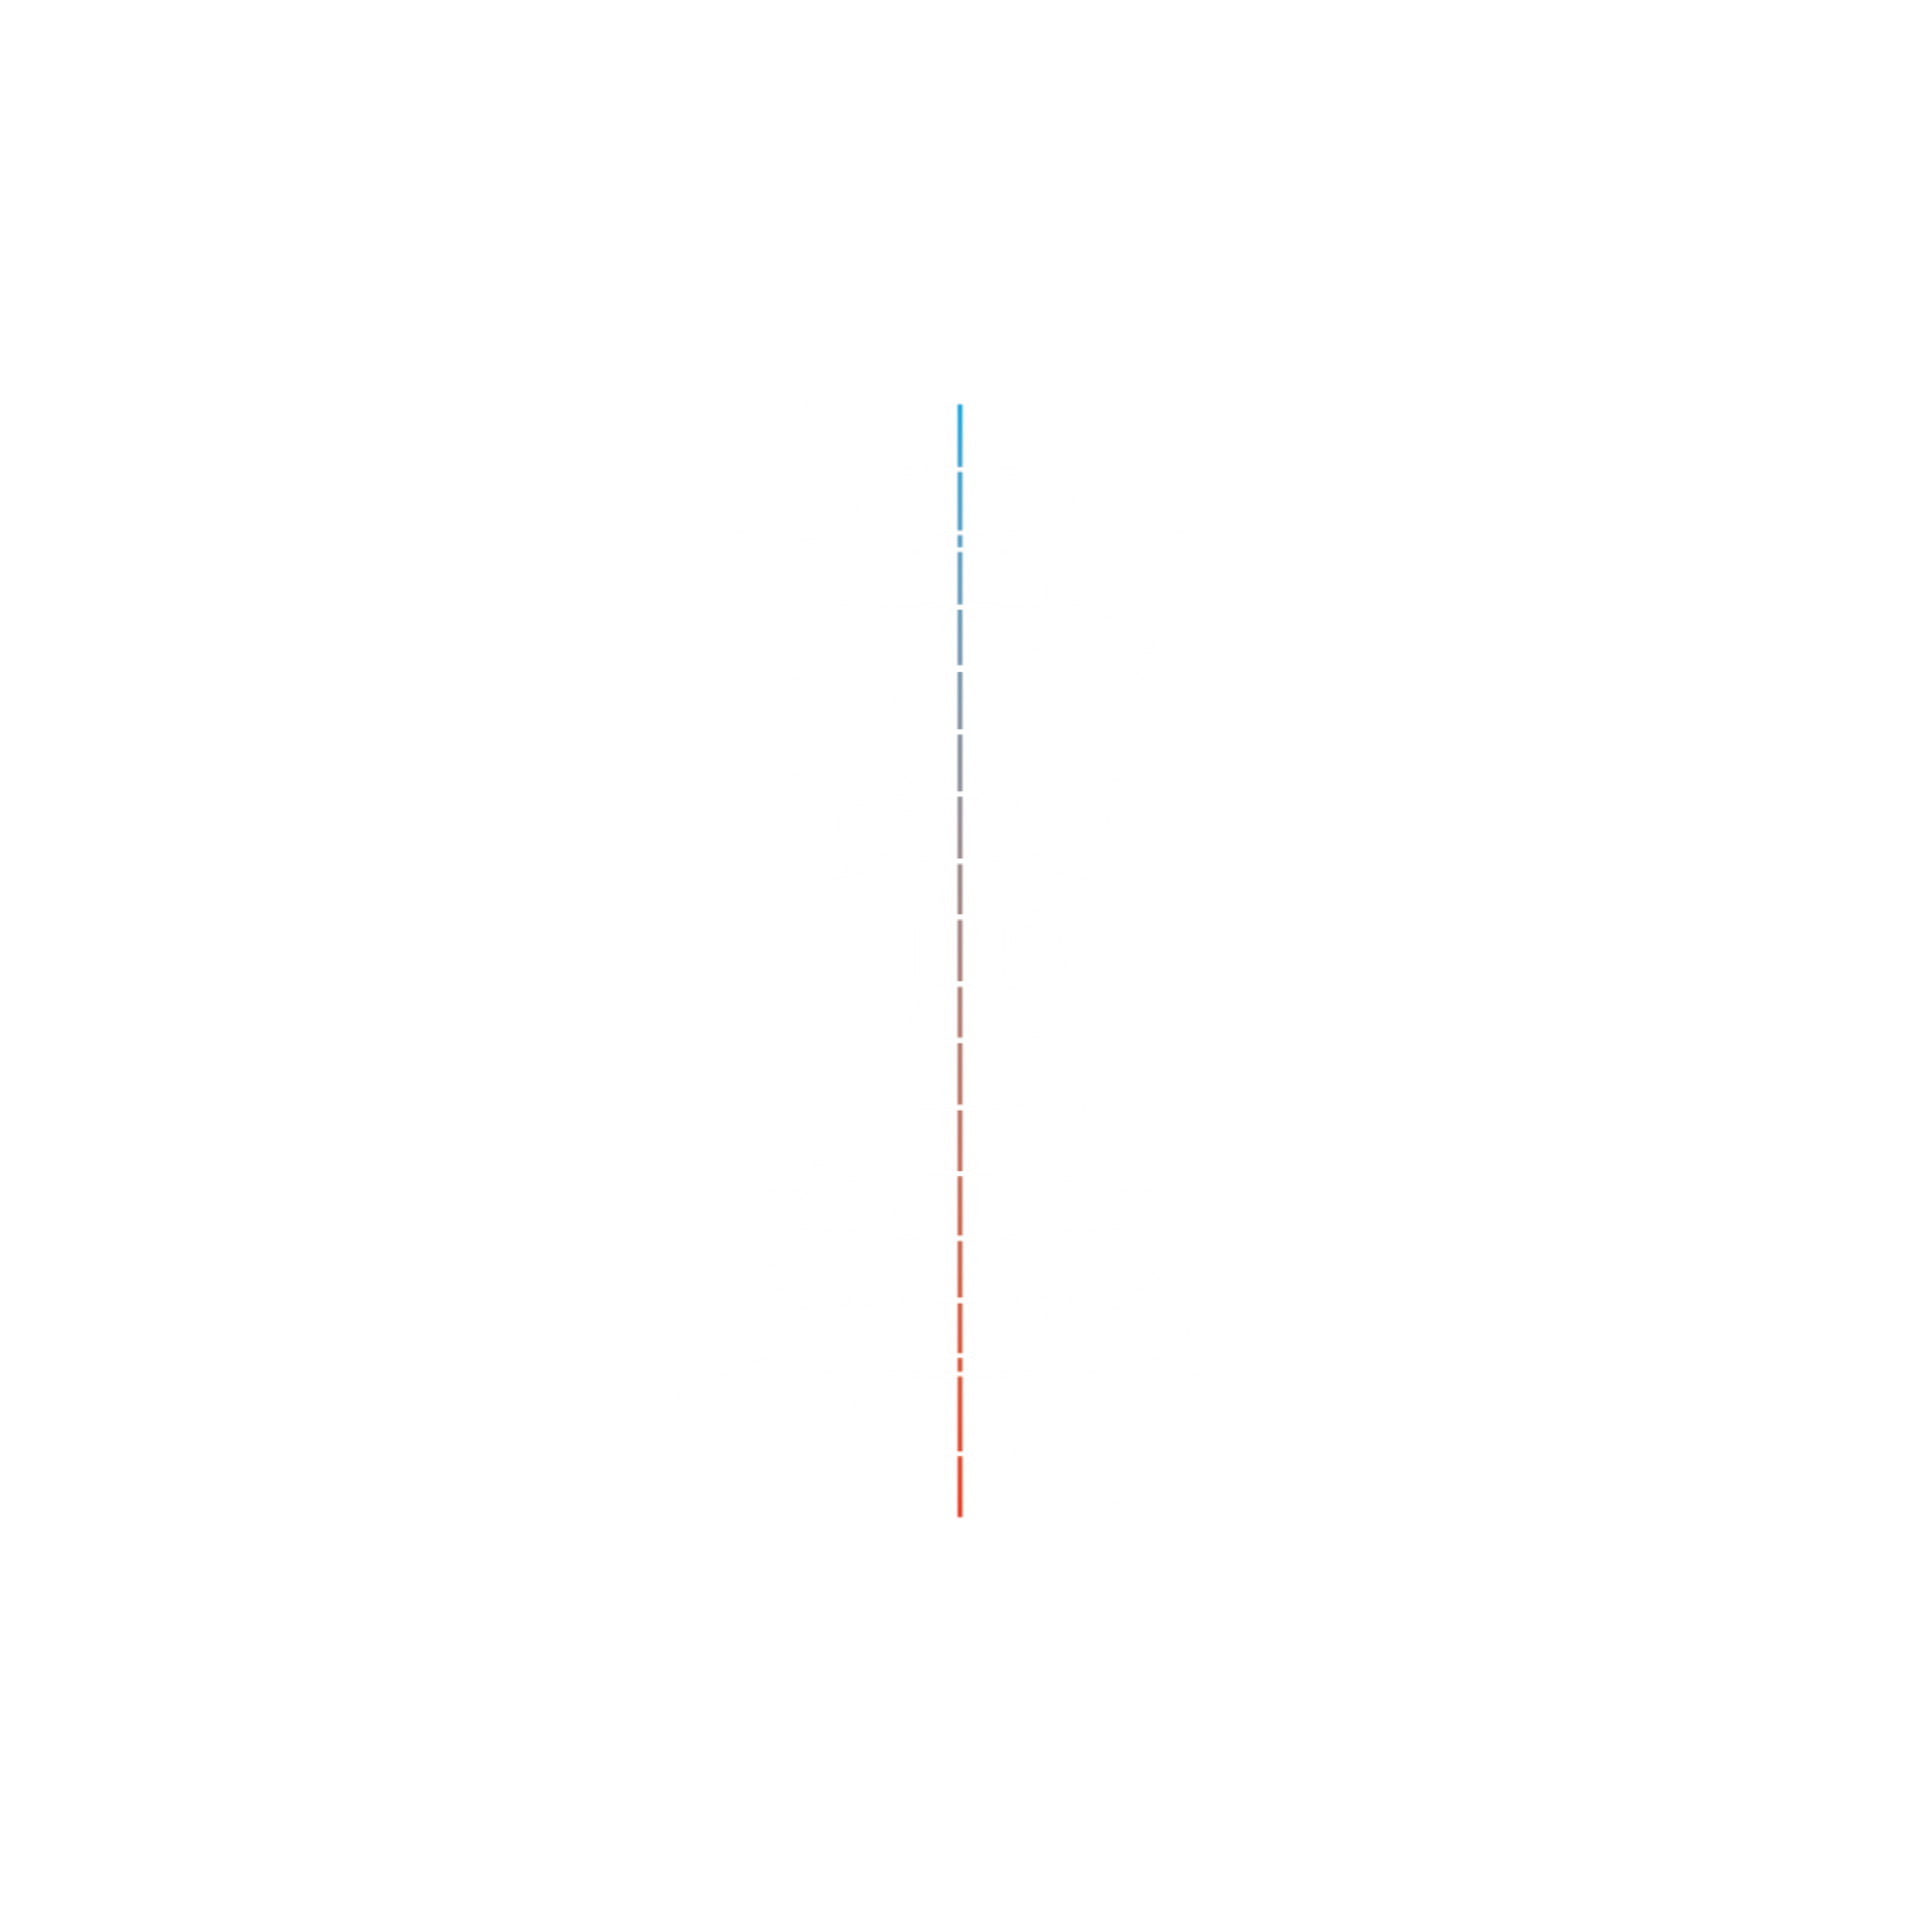 Illustration featuring cylindrical grid with red/blue line showing pressure build-up reduction that encourages healthy movement on black background.